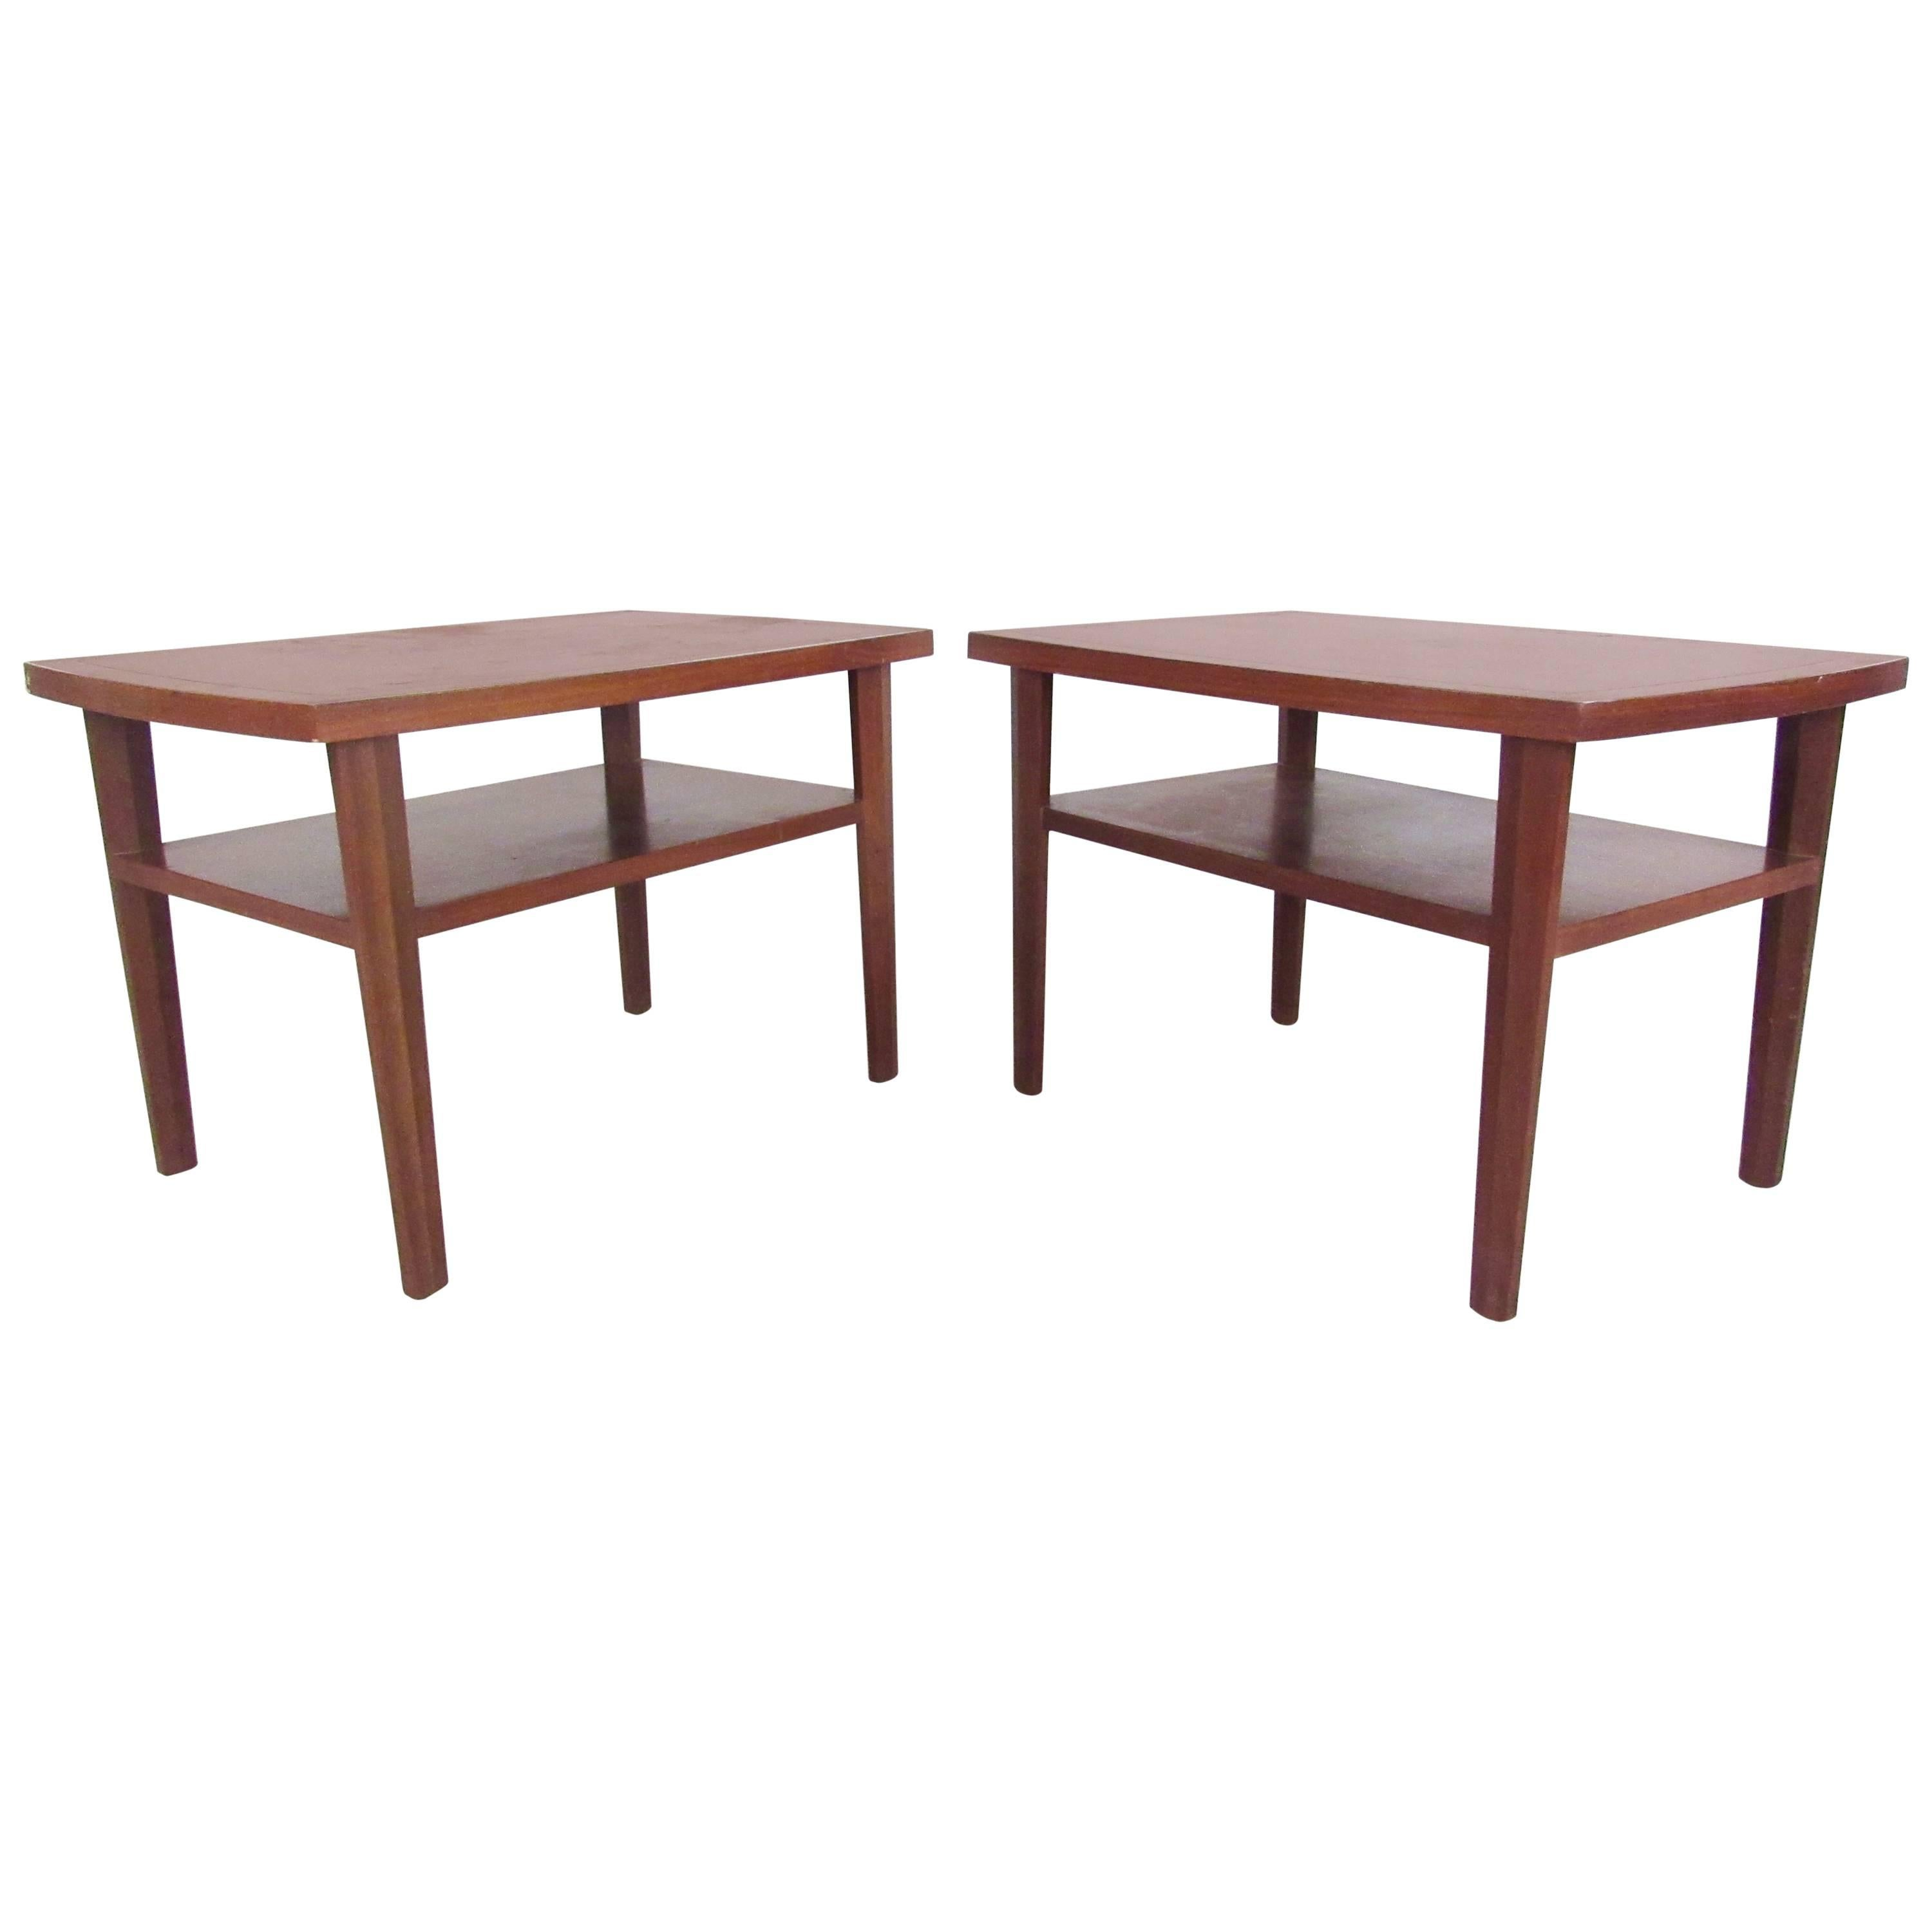 Pair End Tables after George Nakashima for Widdicomb